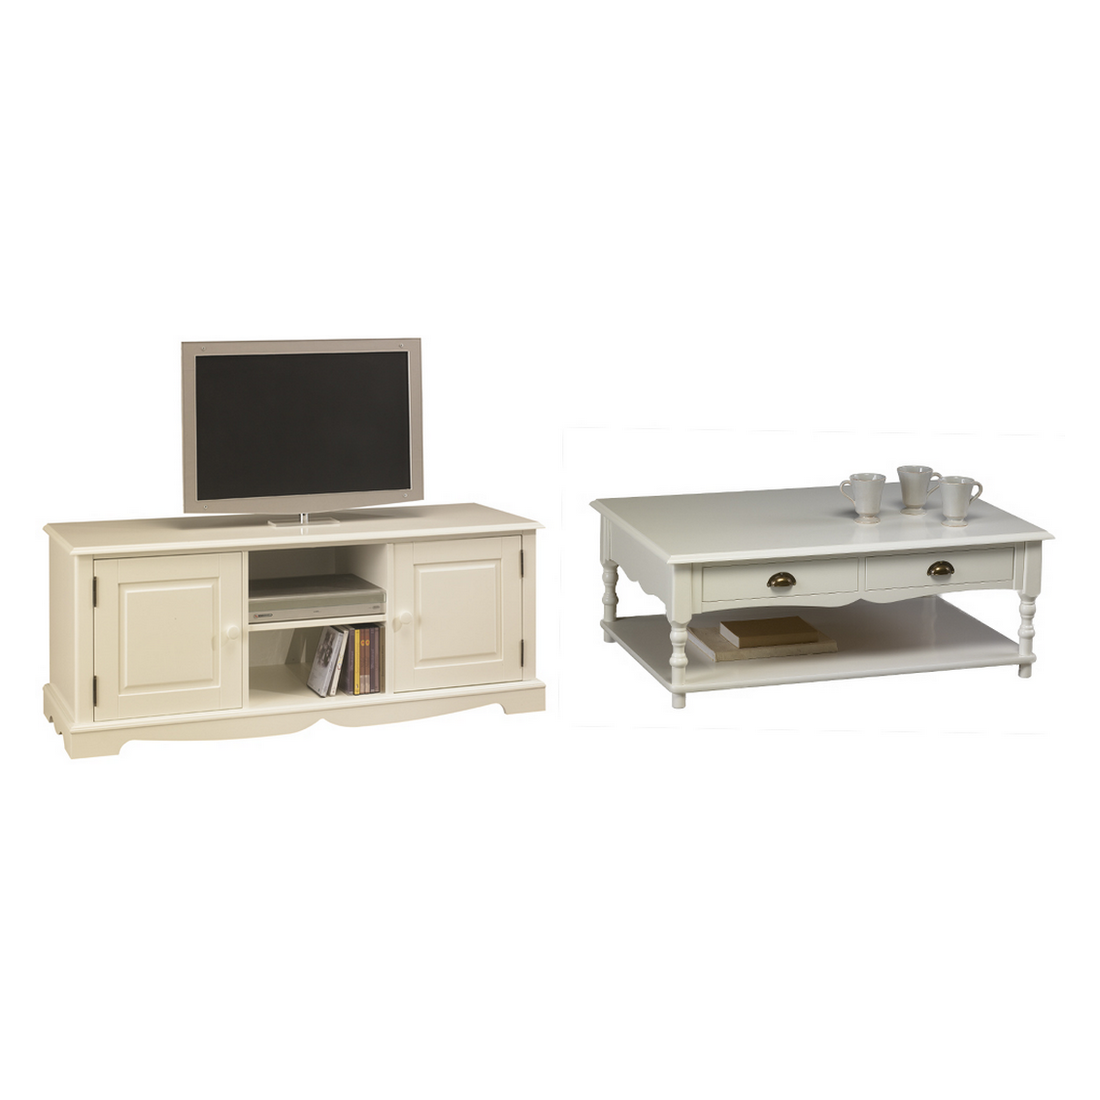 Beaux censemble meuble tv et table basse blancs meuble for Meuble table basse